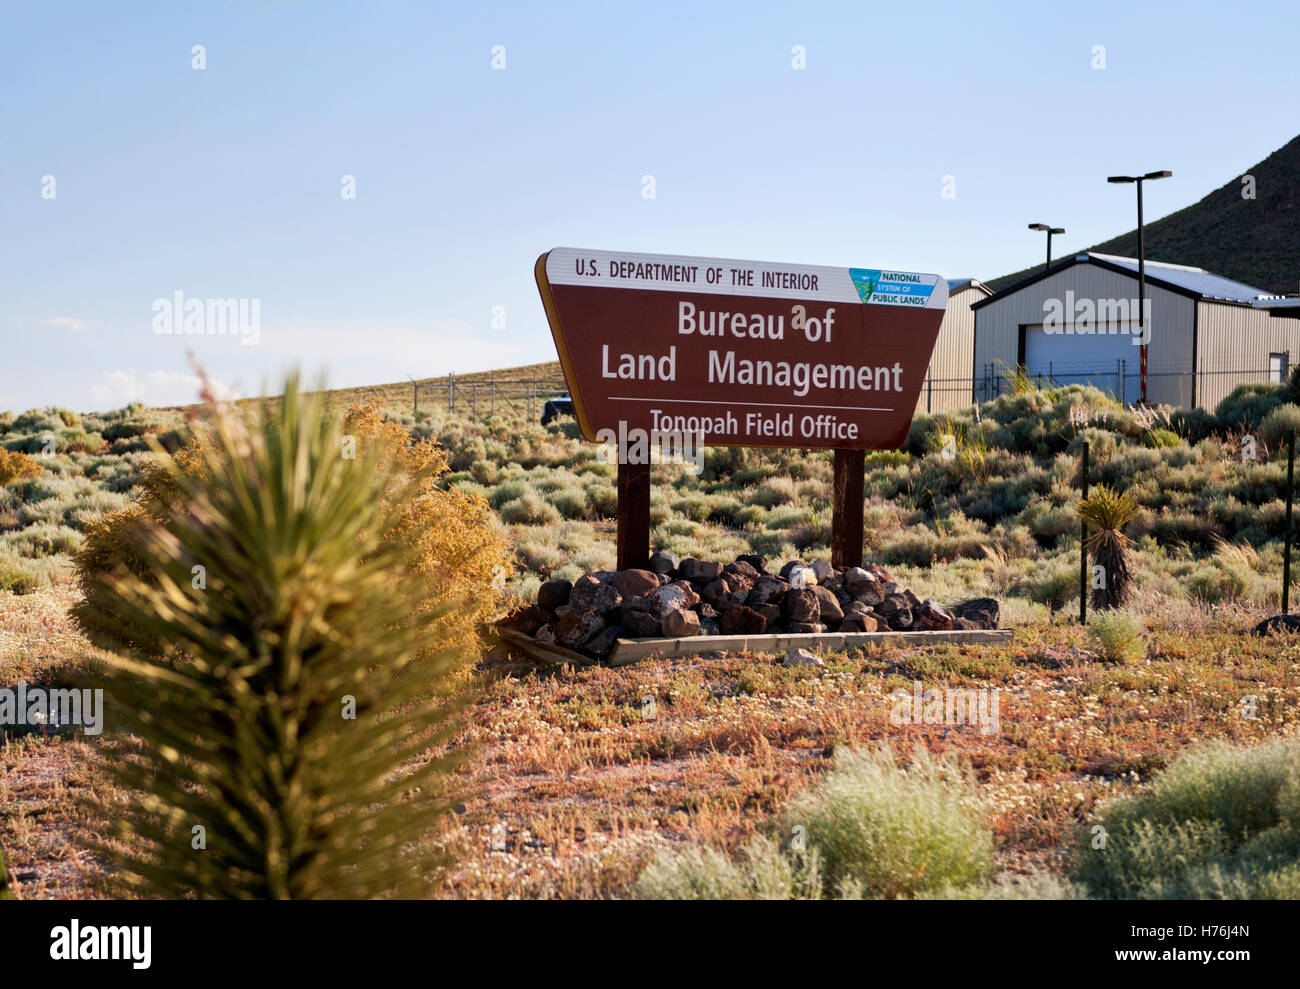 Bureau of Land Management, Tonopah Nevada Field Office - Stock Image